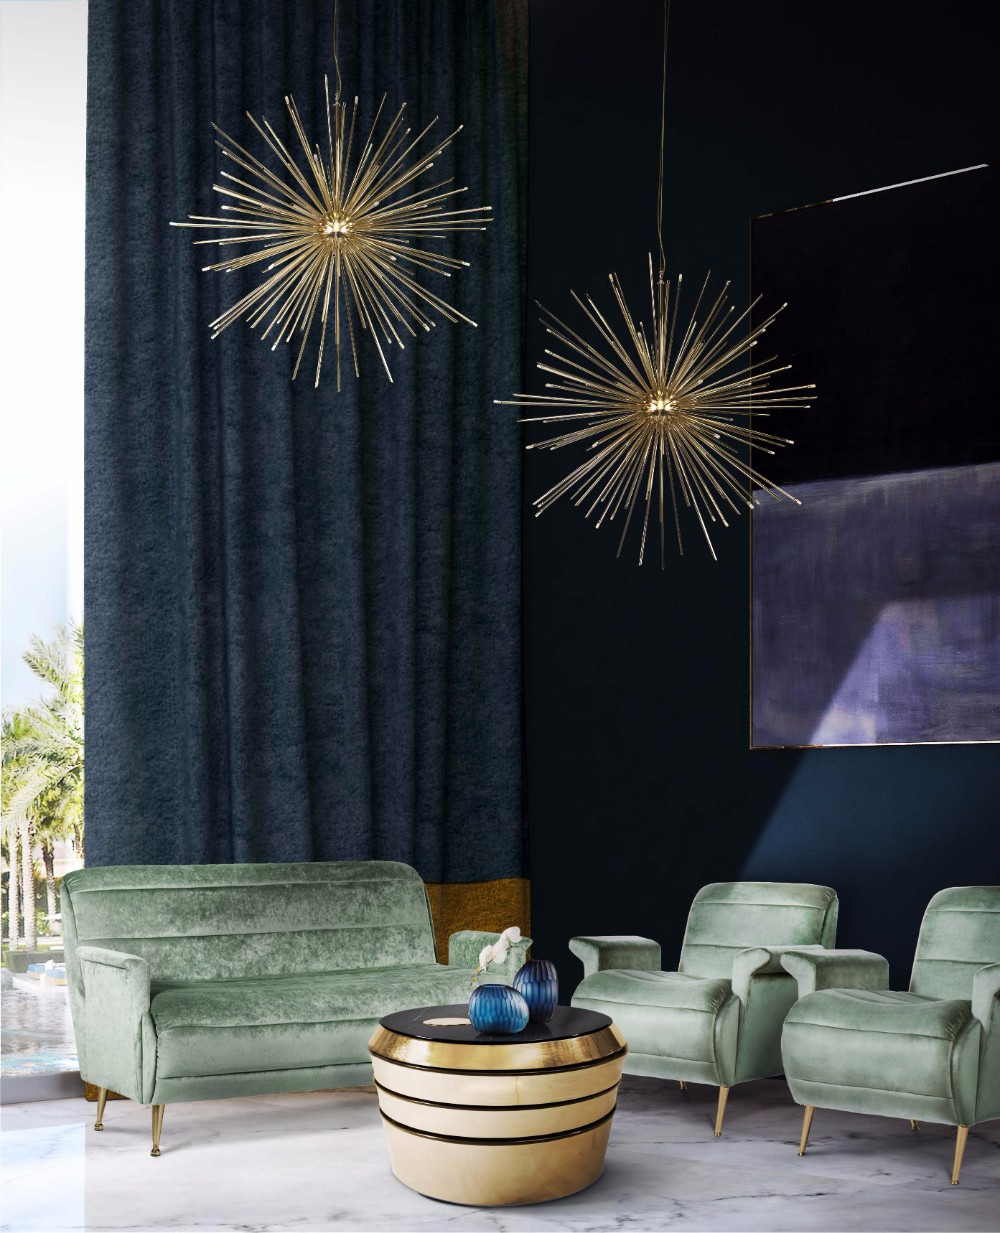 New Year's Eve Lighting Designs new year's eve lighting designs New Year's Eve Lighting Designs That You Must Have Product of the Week Cannonball Mid Century Suspension Lamp 5